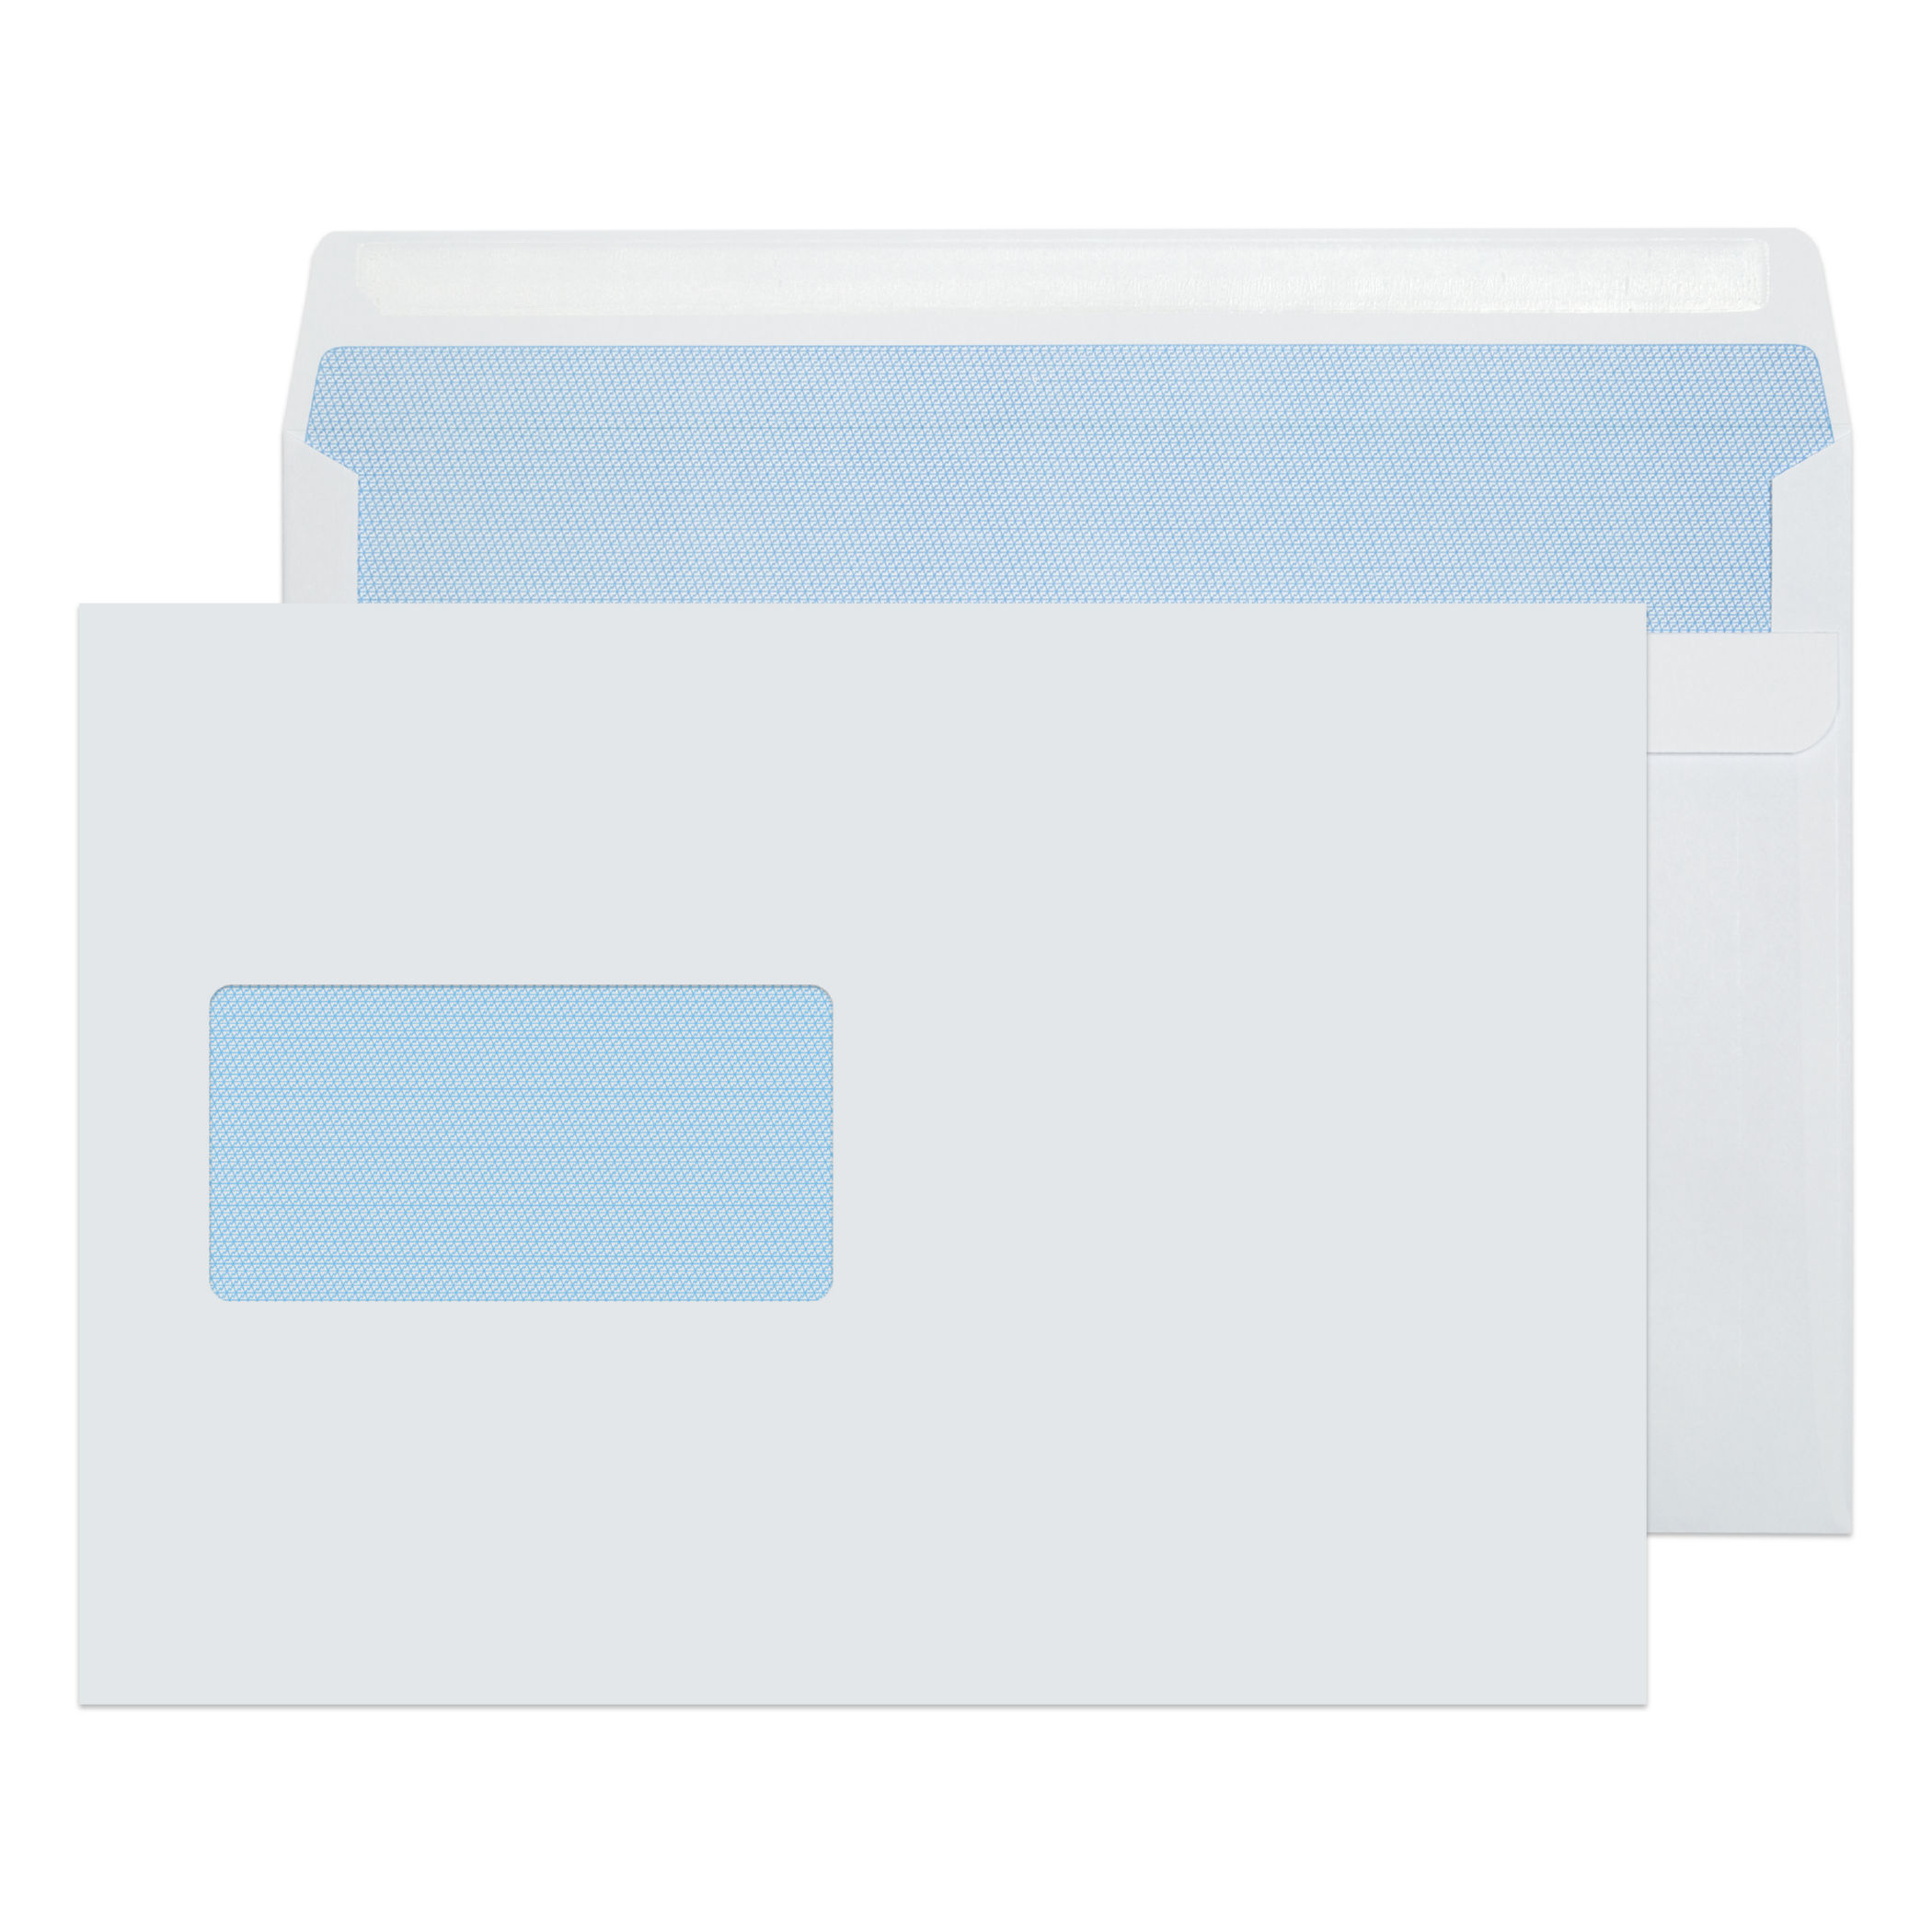 C5 Purely Everyday White Wndw Self Seal Wallet C5 90gsm PK500